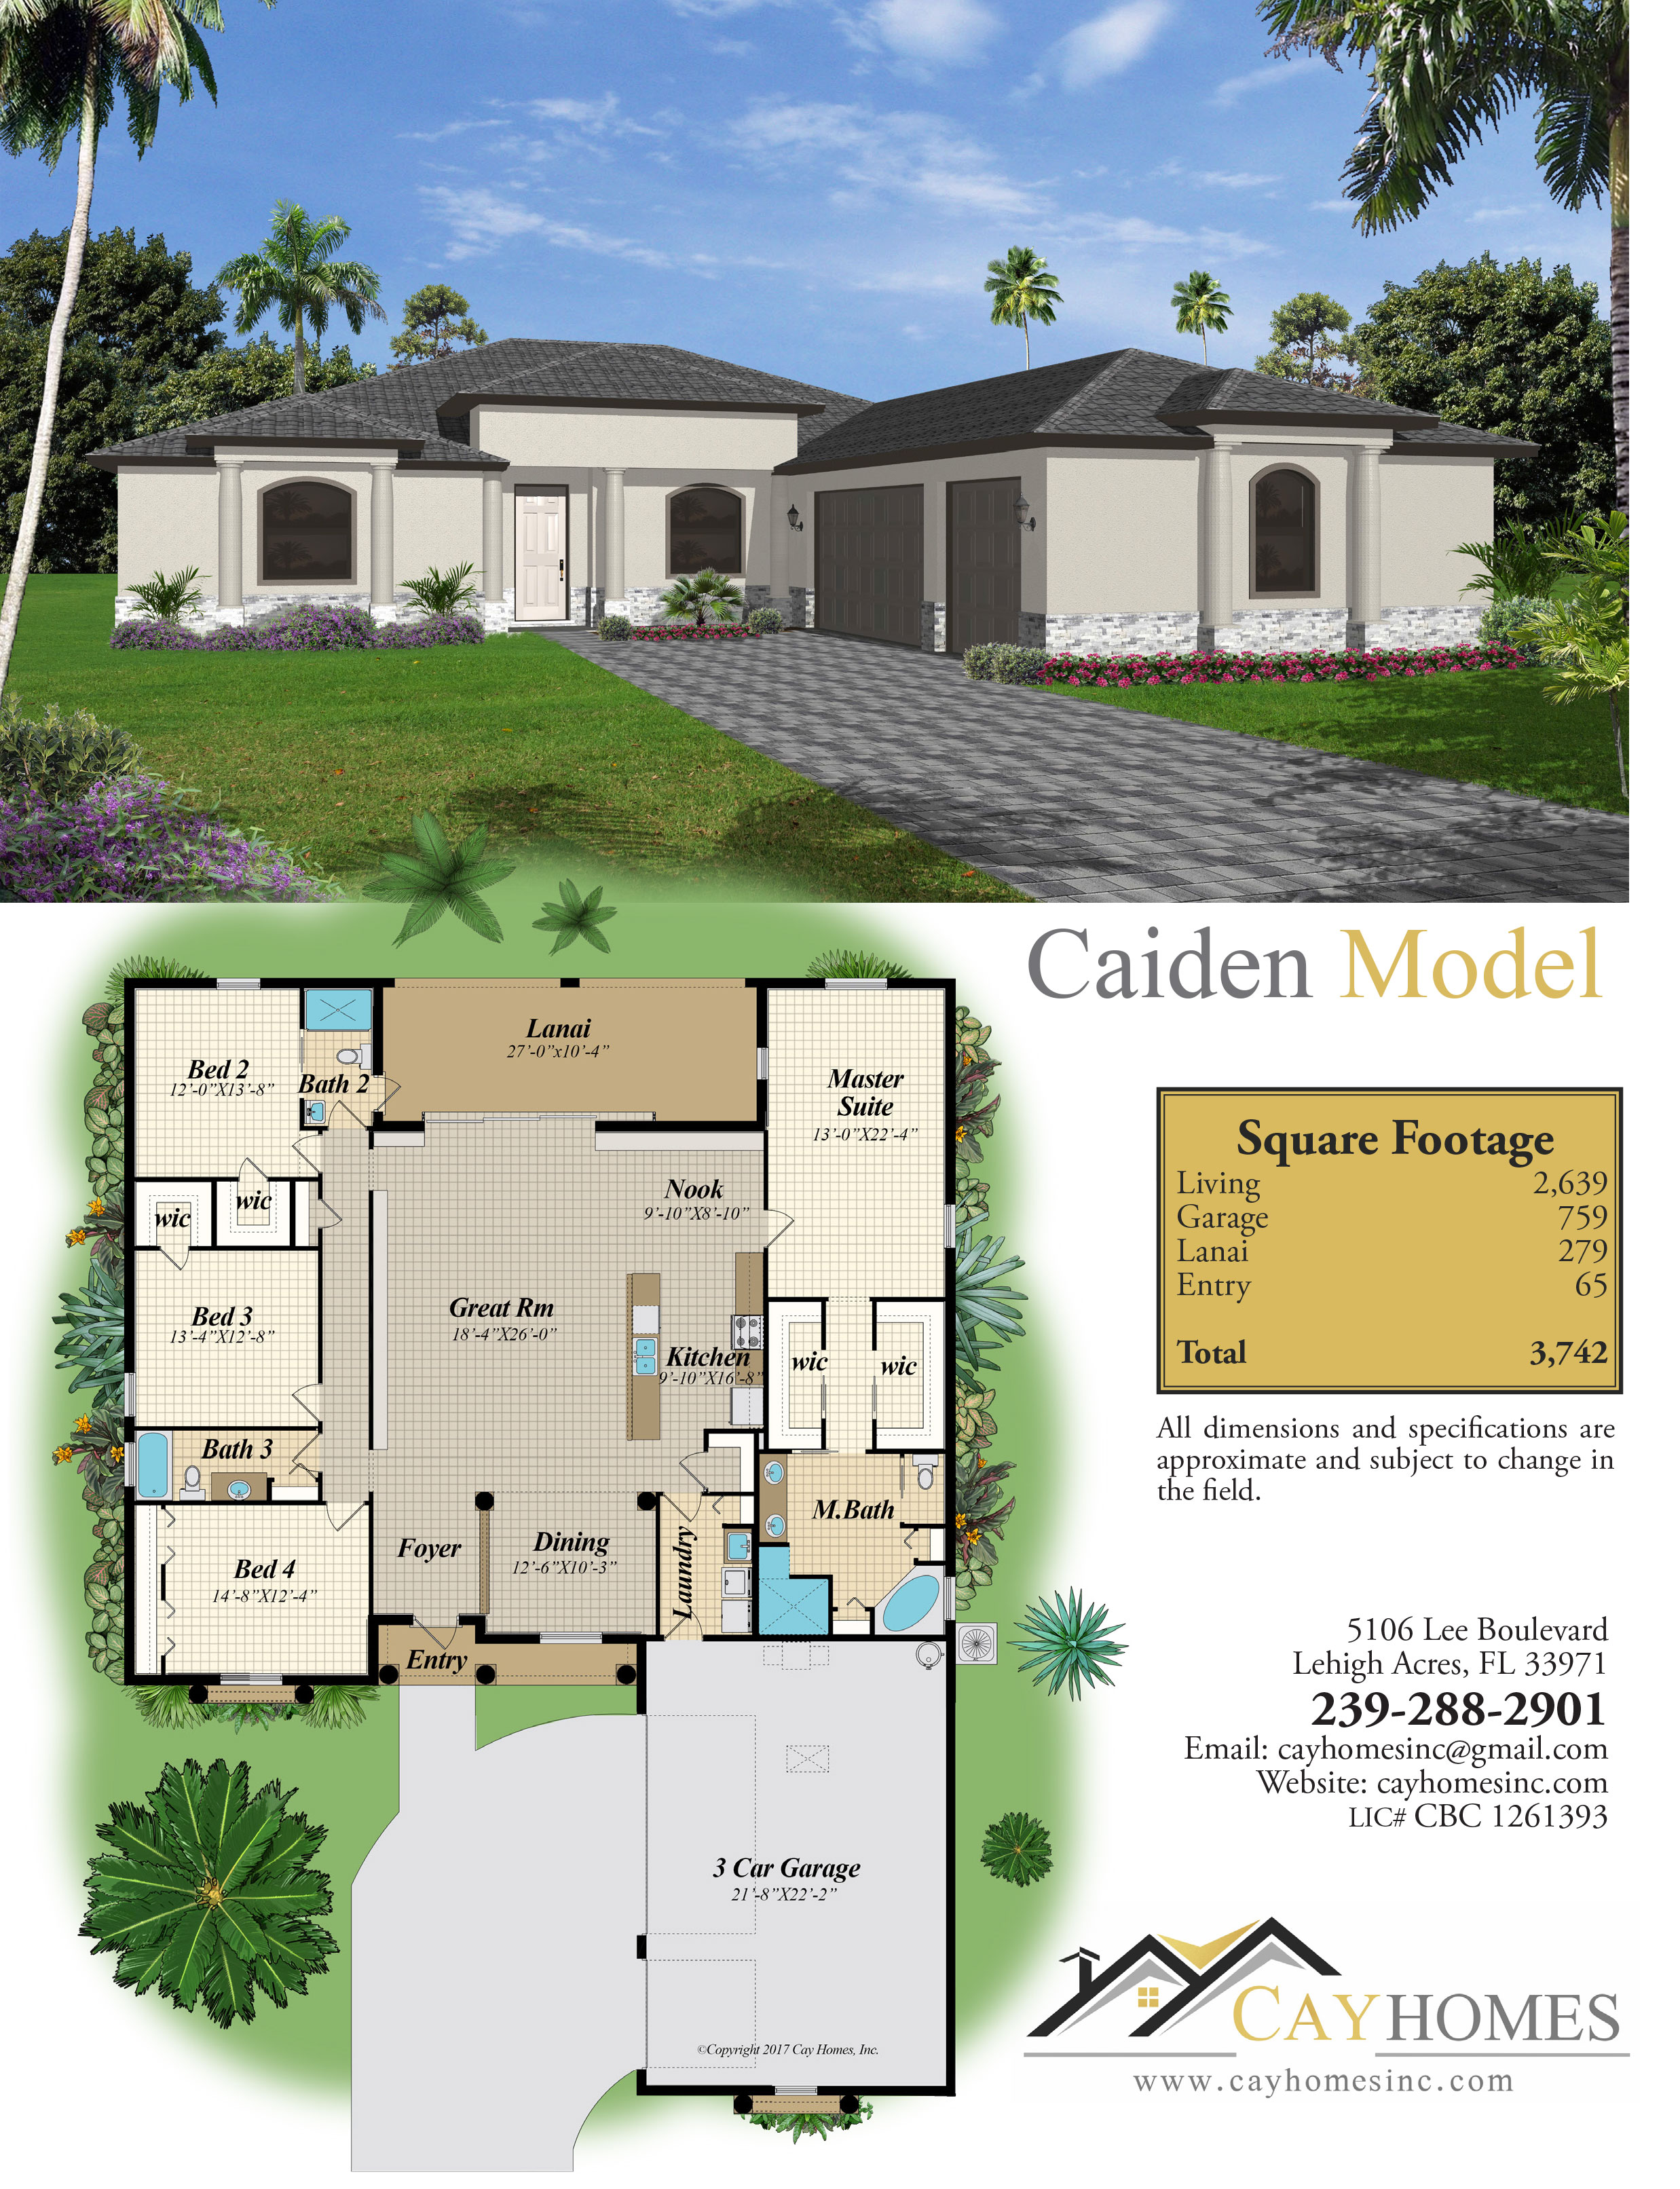 The Caiden Home Brochure, a Model Home by Cay Homes, Inc.